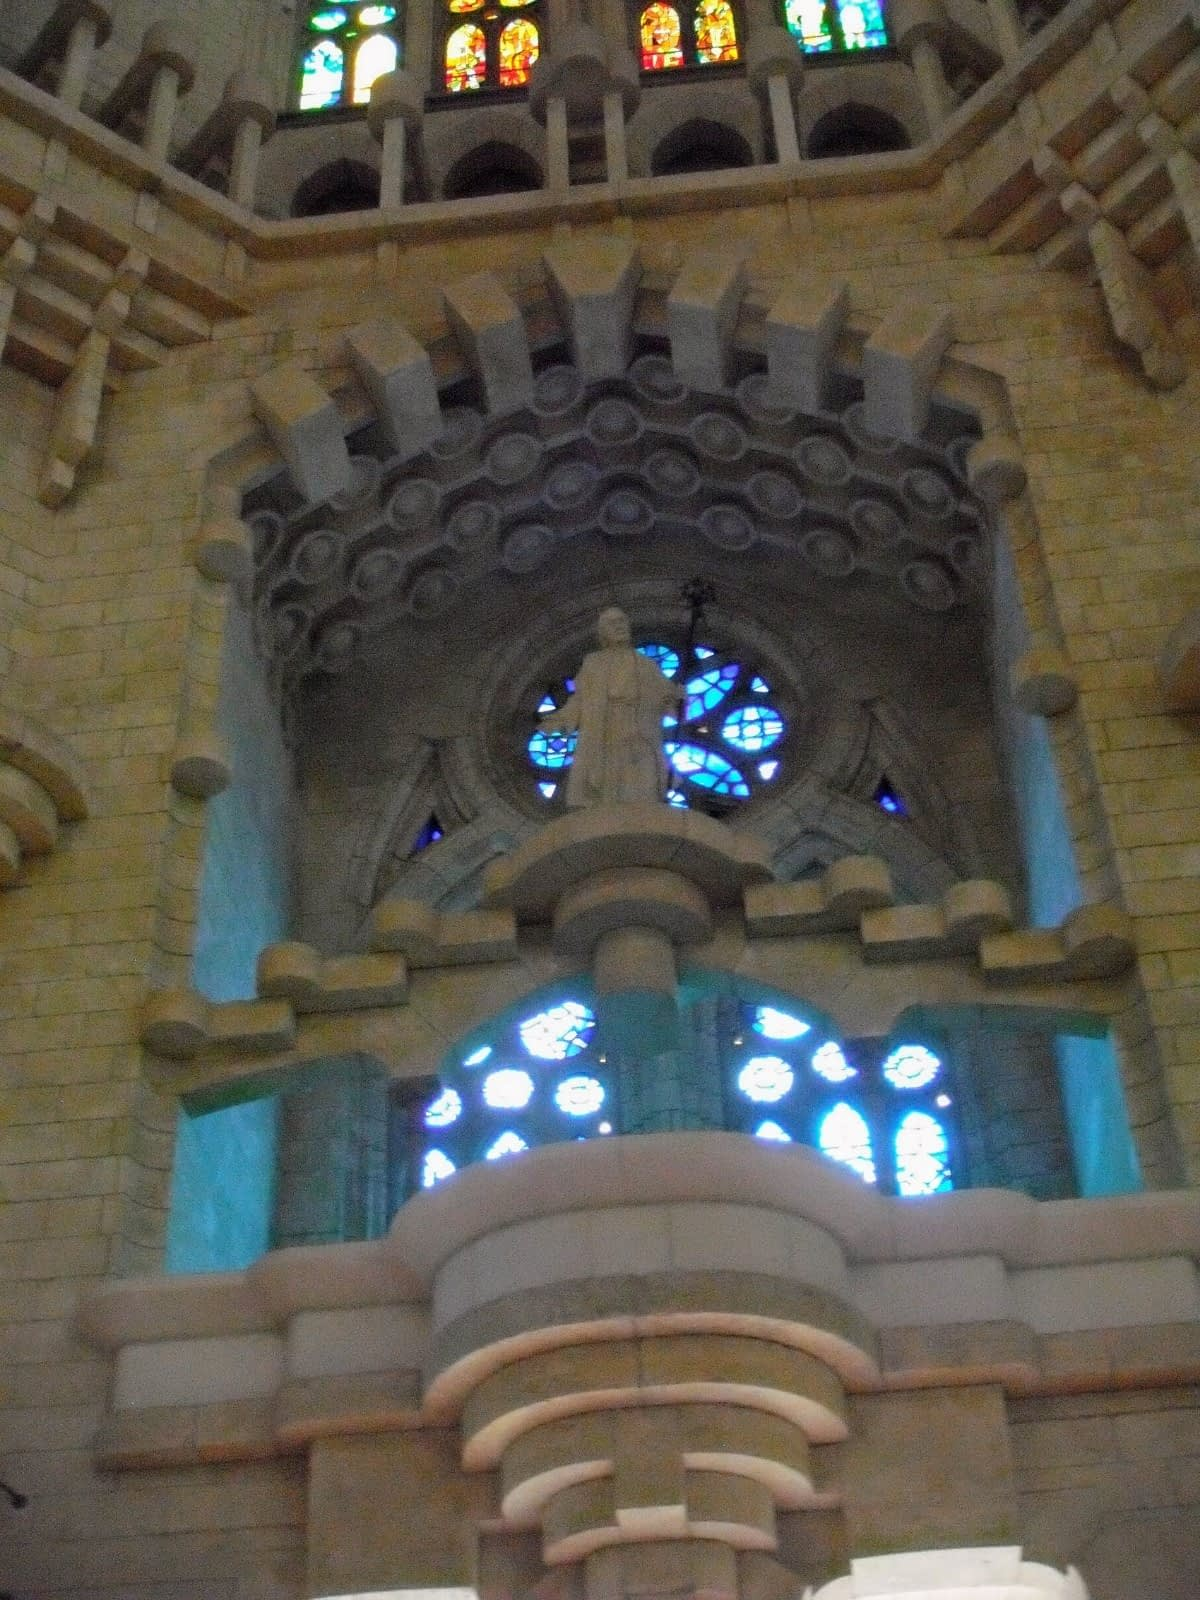 In Photos: Why Visiting The Inside of Sagrada Familia Is Worth It 7